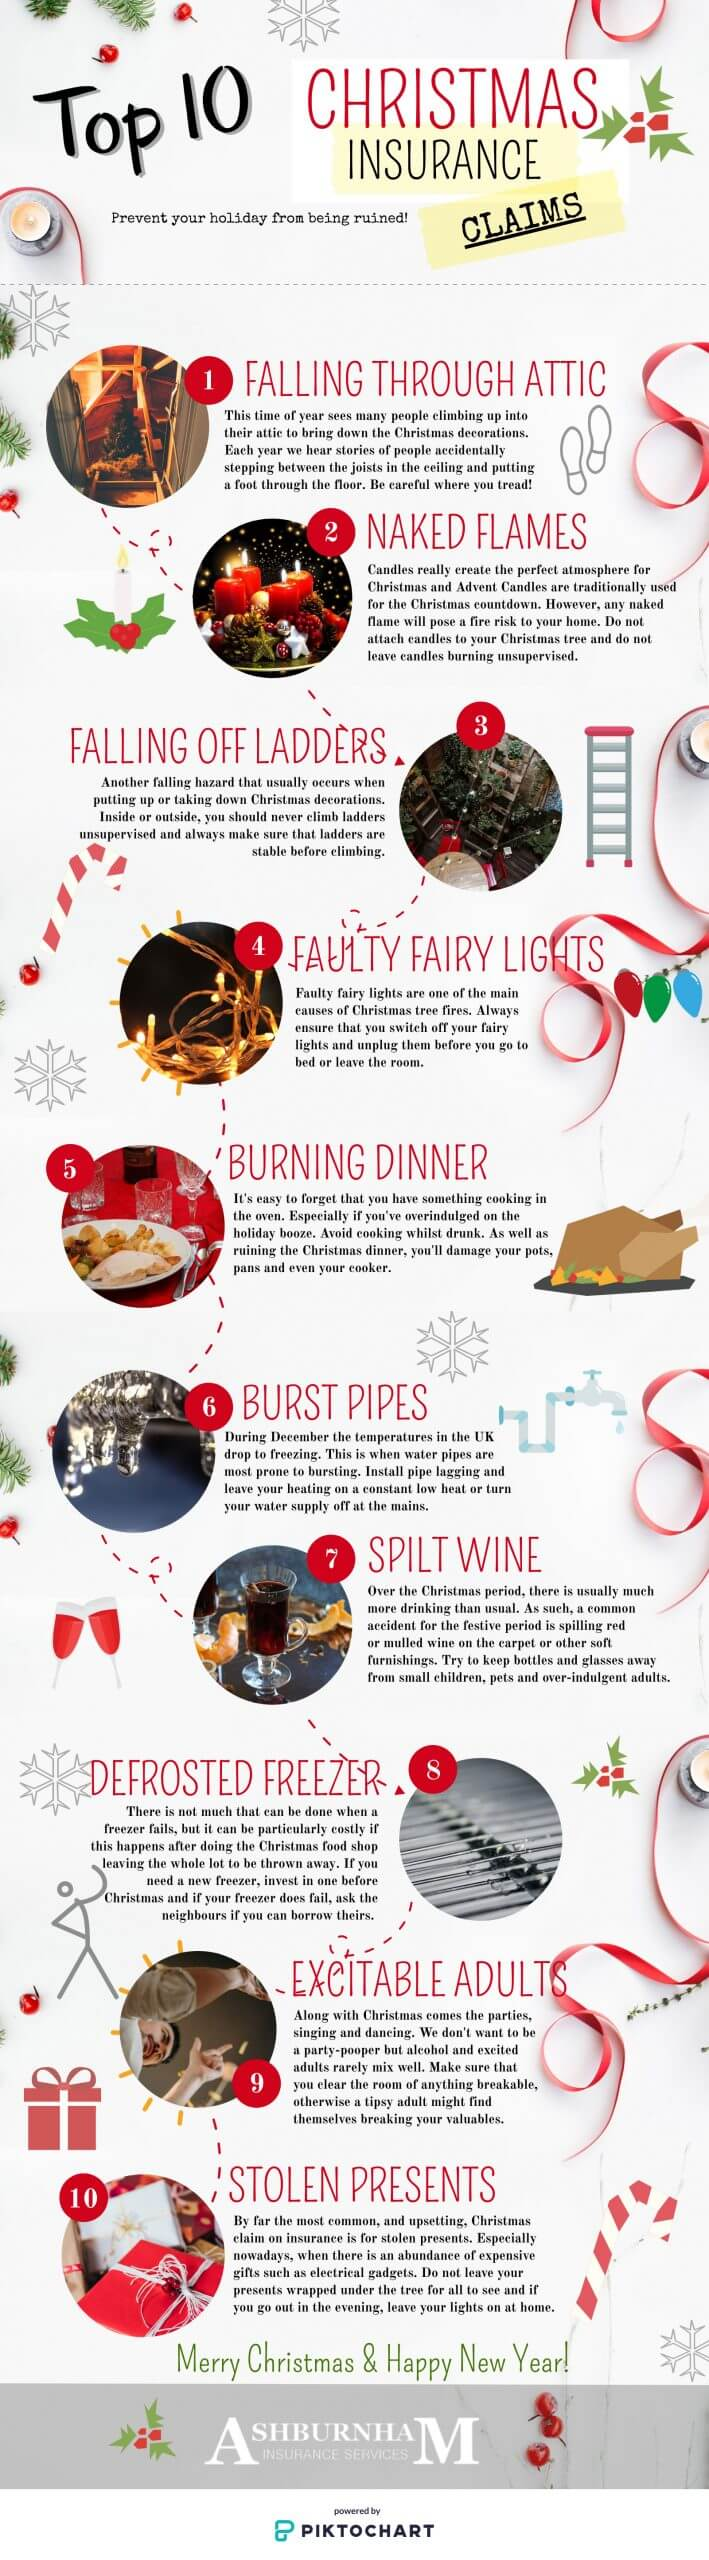 Top 10 Christmas Insurance Claims Infographic